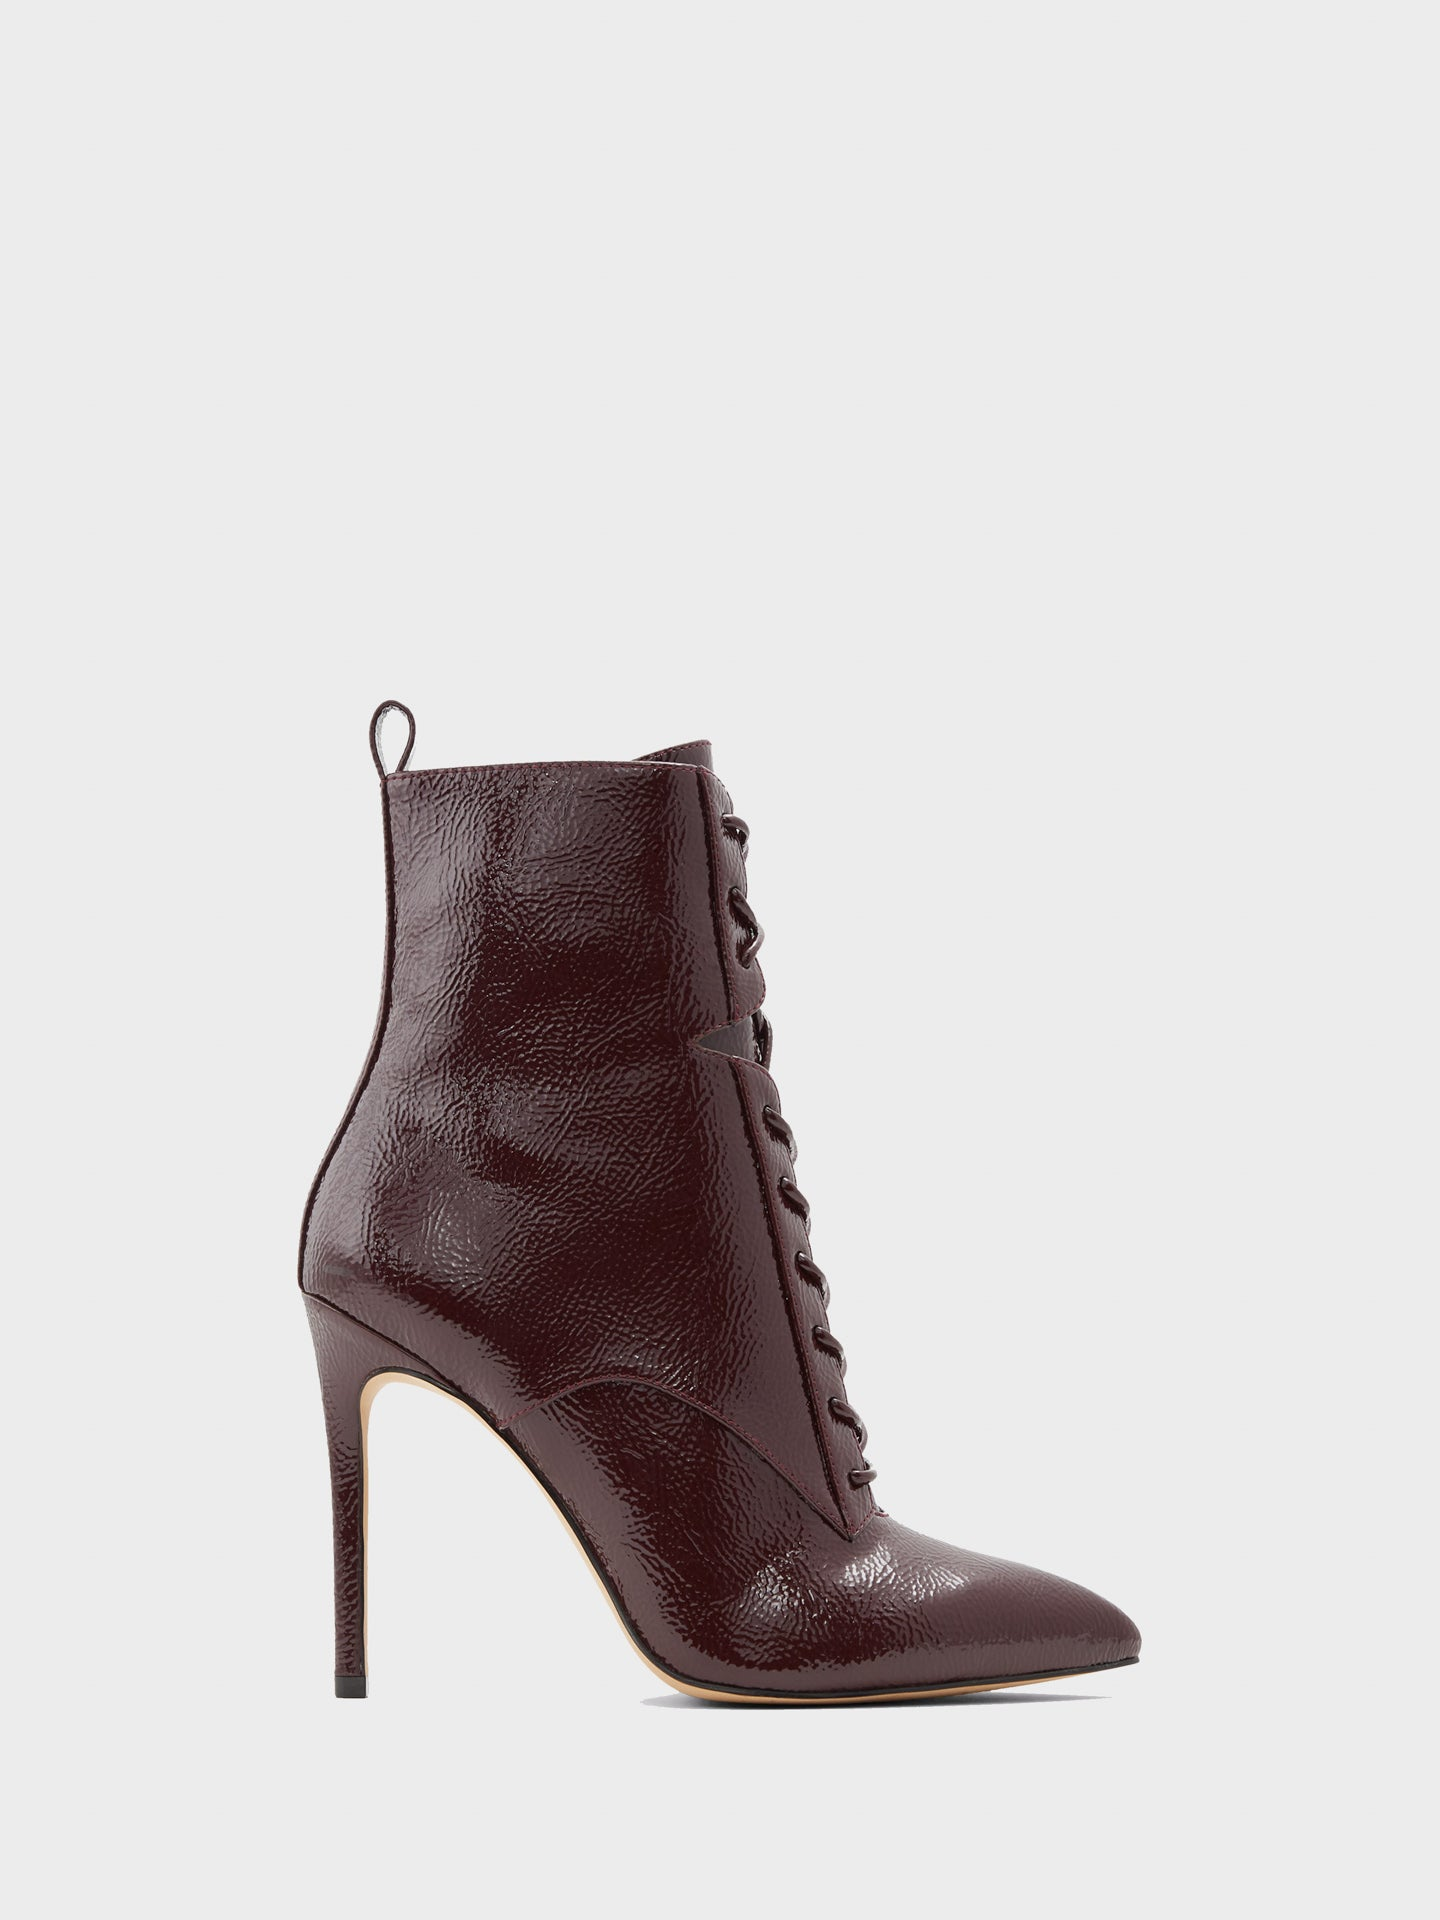 Aldo Burgundy Pointed Toe Ankle Boots